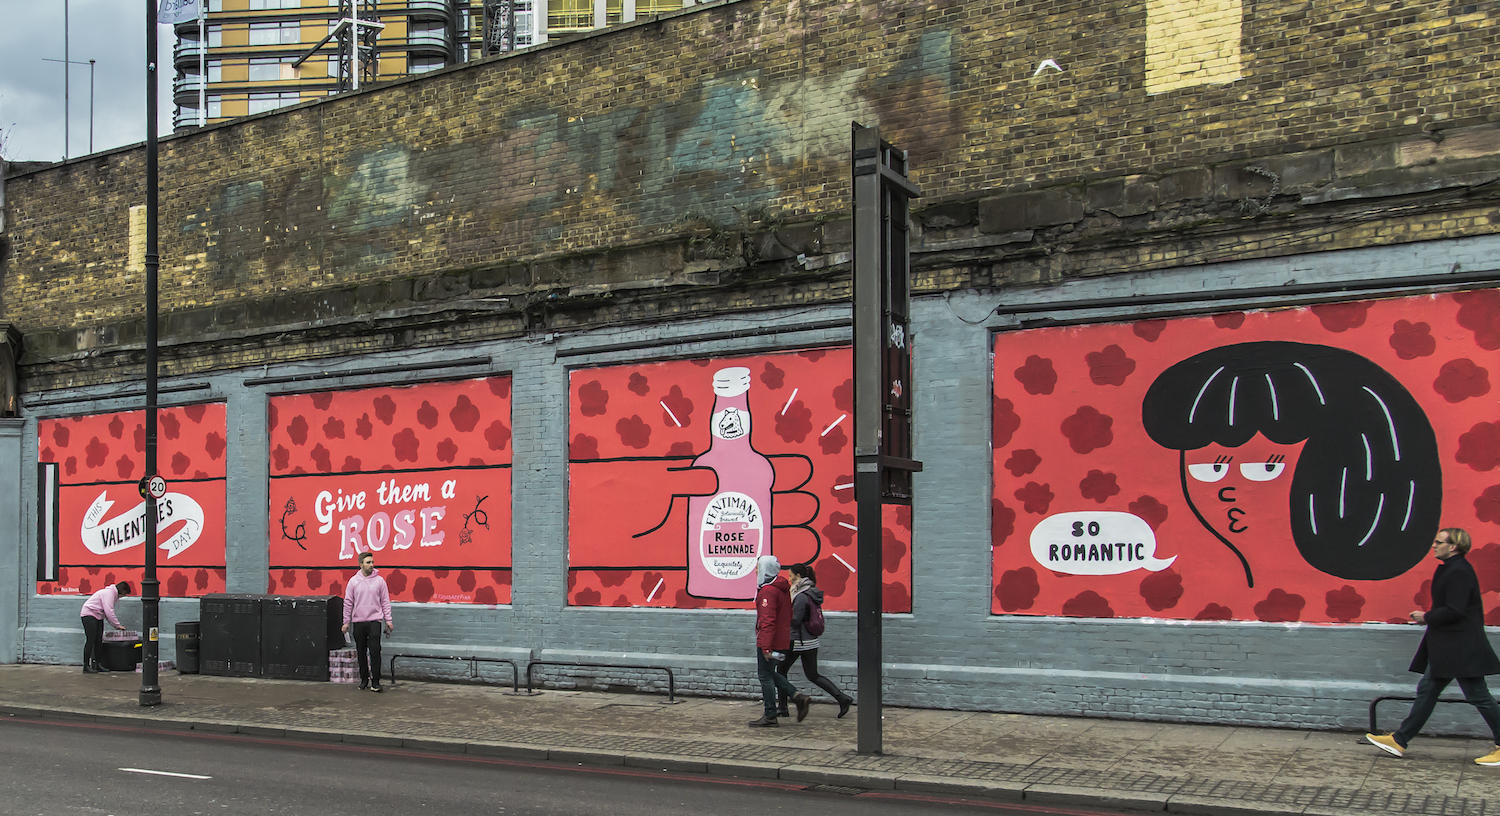 Shoreditch-Art-Wall Quirky Group Brand Experiential Events Activation Sampling